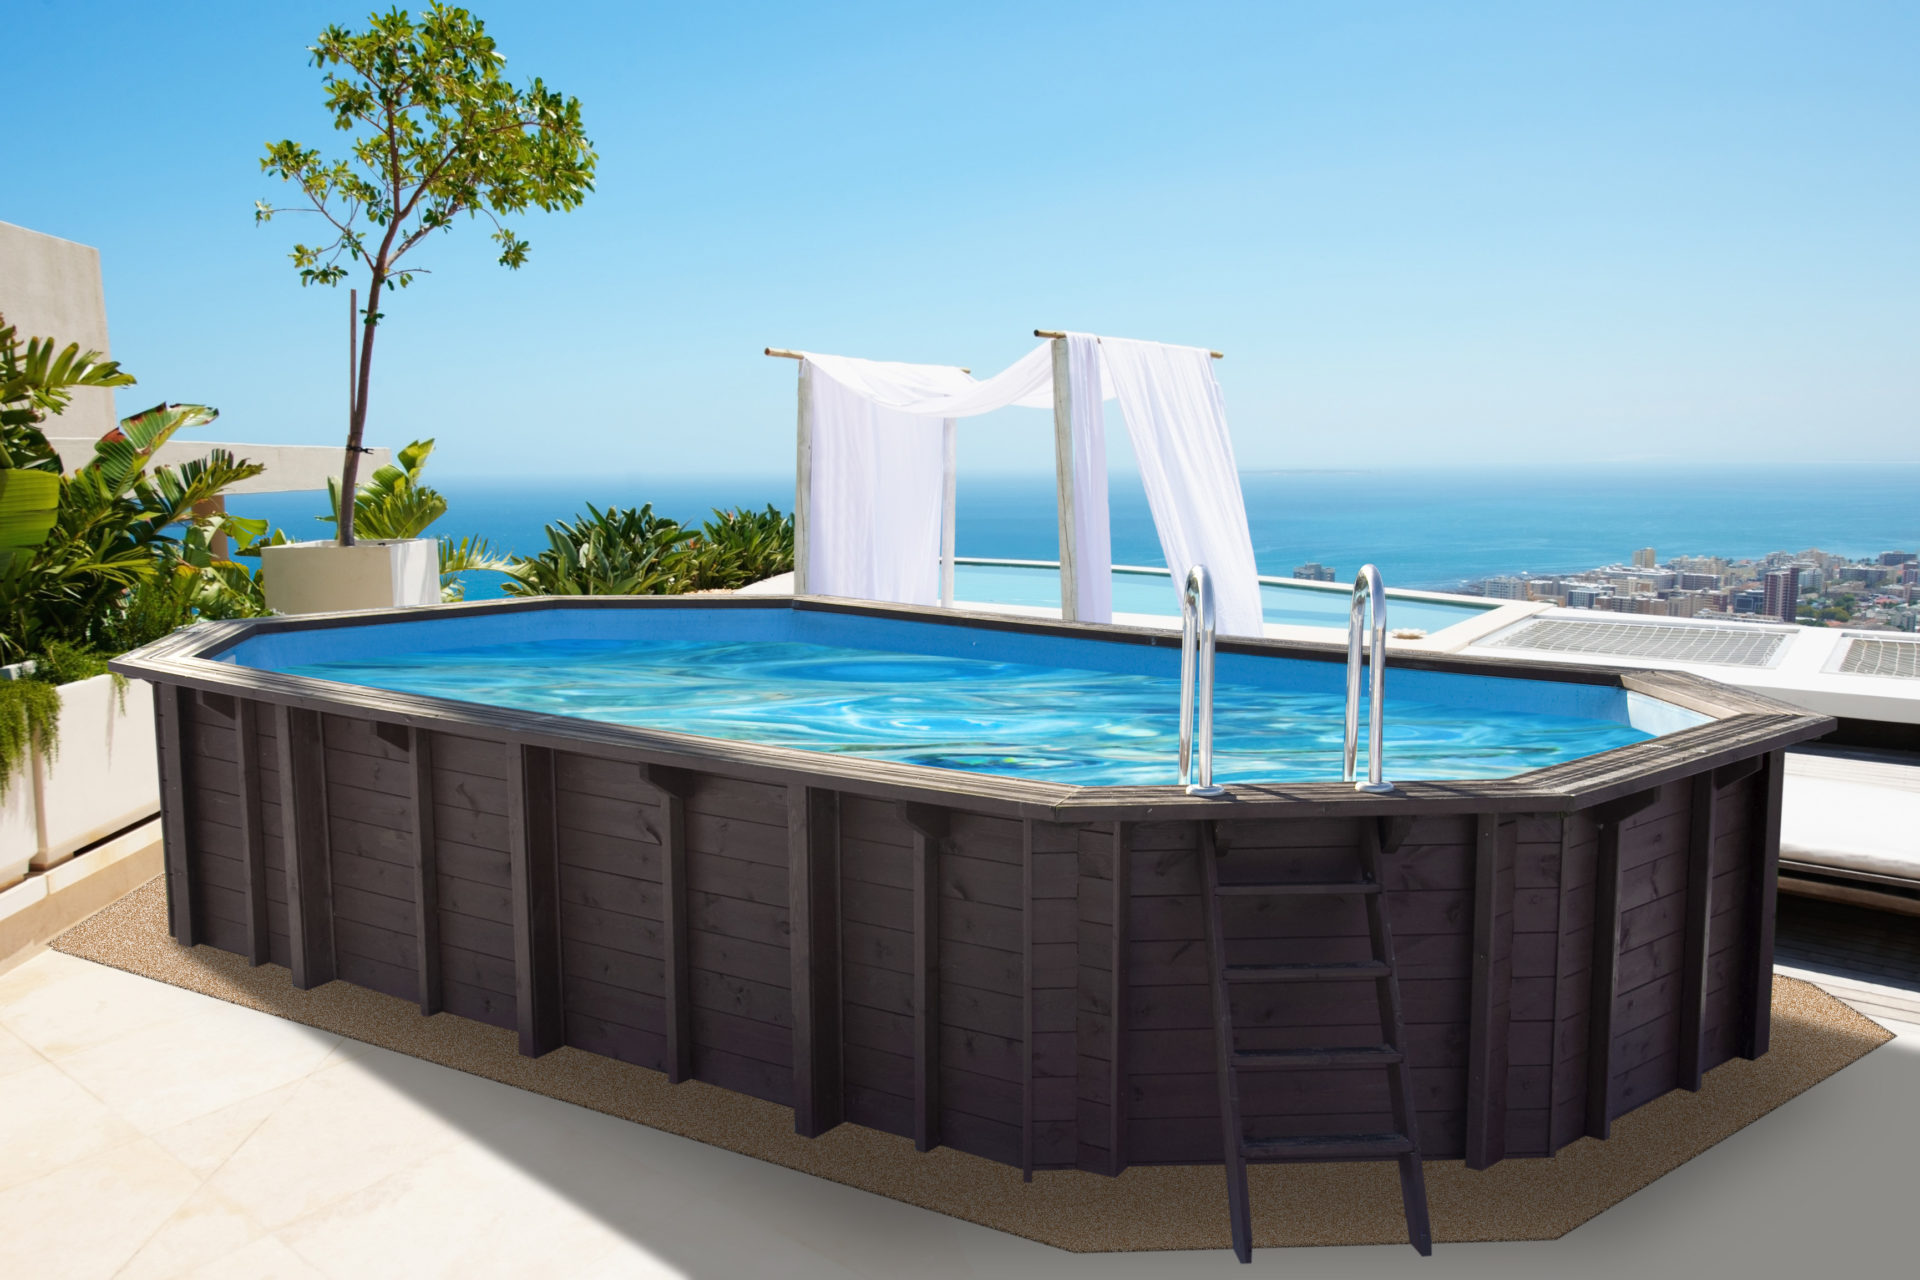 Abatec Above Ground Pools Premium Capri